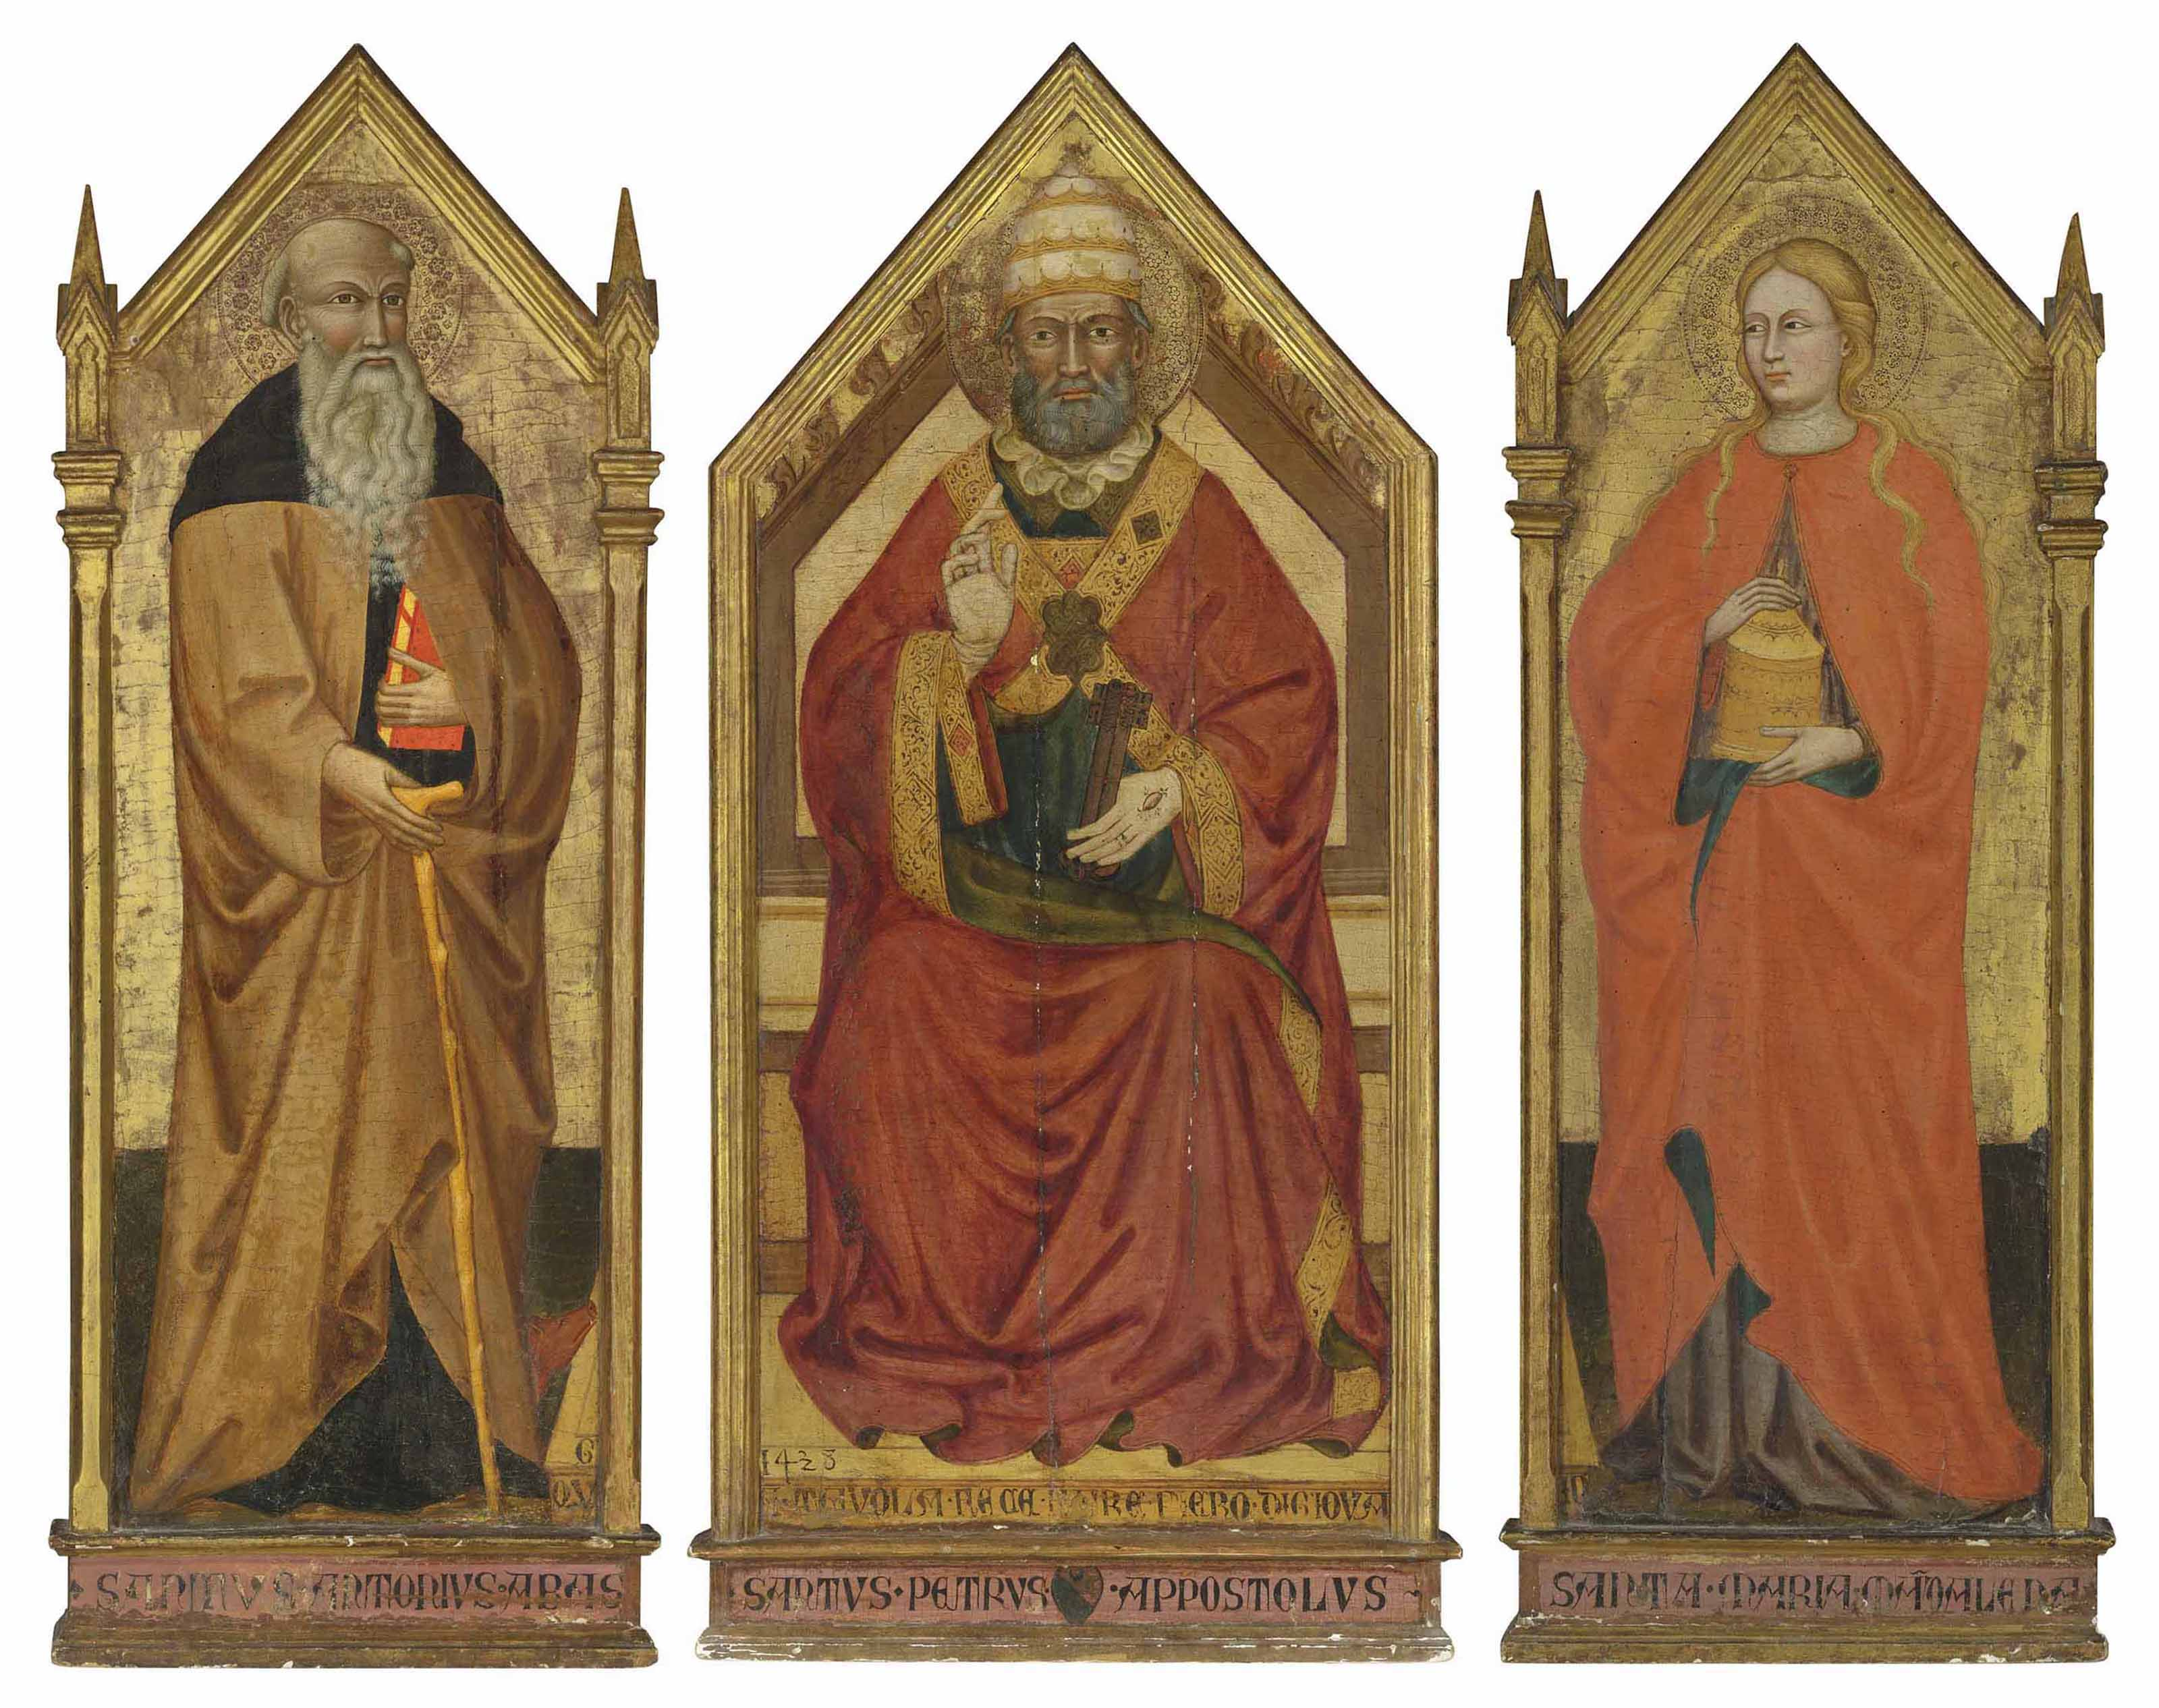 A triptych: the central panel: Saint Peter enthroned; the left wing: Saint Anthony Abbot; the right wing: Saint Mary Magdalene